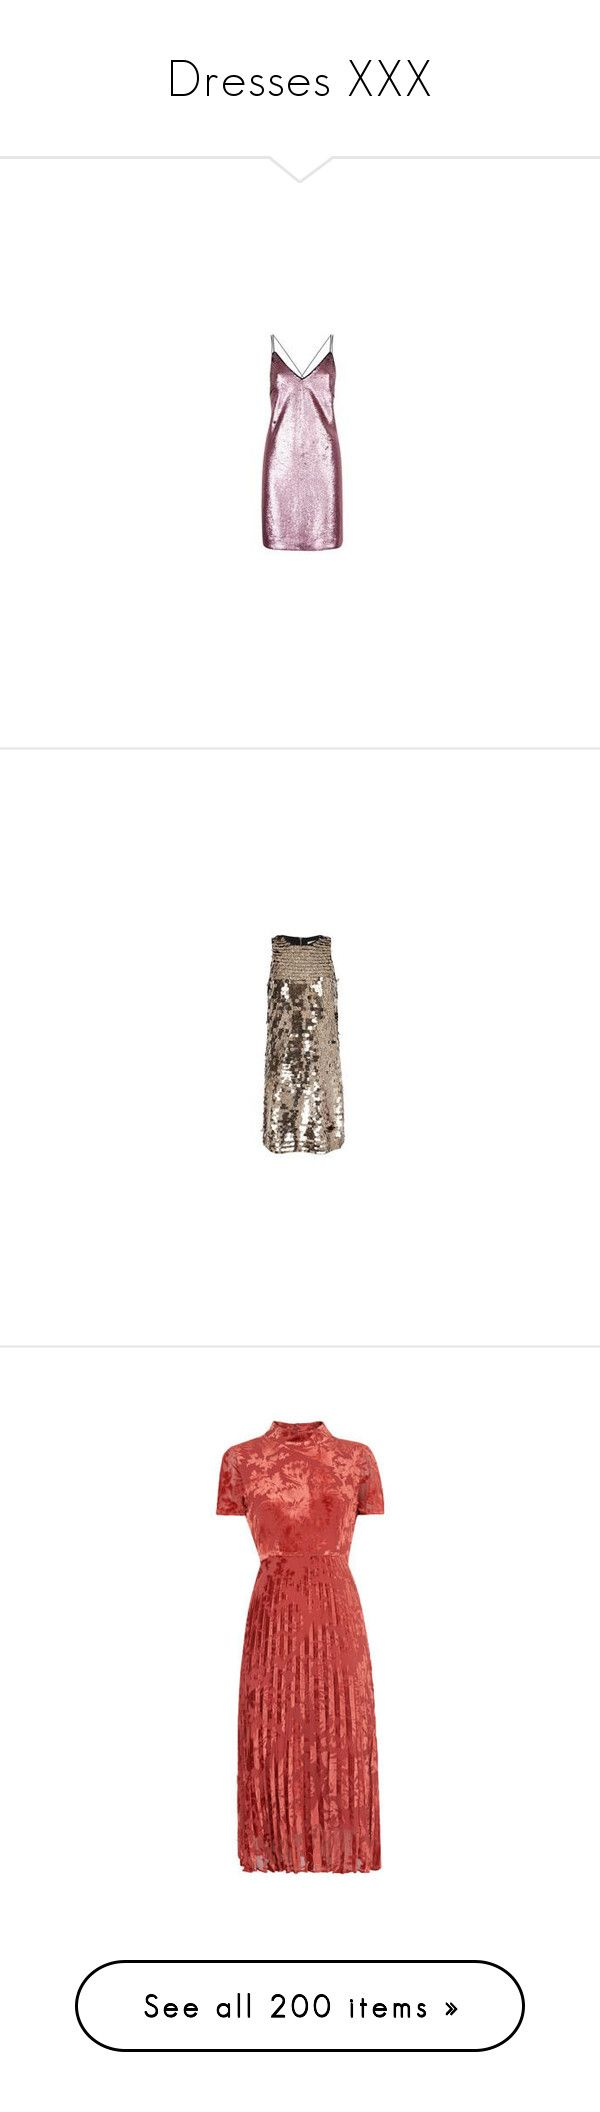 """Dresses XXX"" by lucyheartyui ❤ liked on Polyvore featuring dresses, night out dresses, pink dress, cocktail party dress, pink going out dresses, sparkle dresses, brown sequin dress, sequined dress, brown cocktail dress and brown party dress"